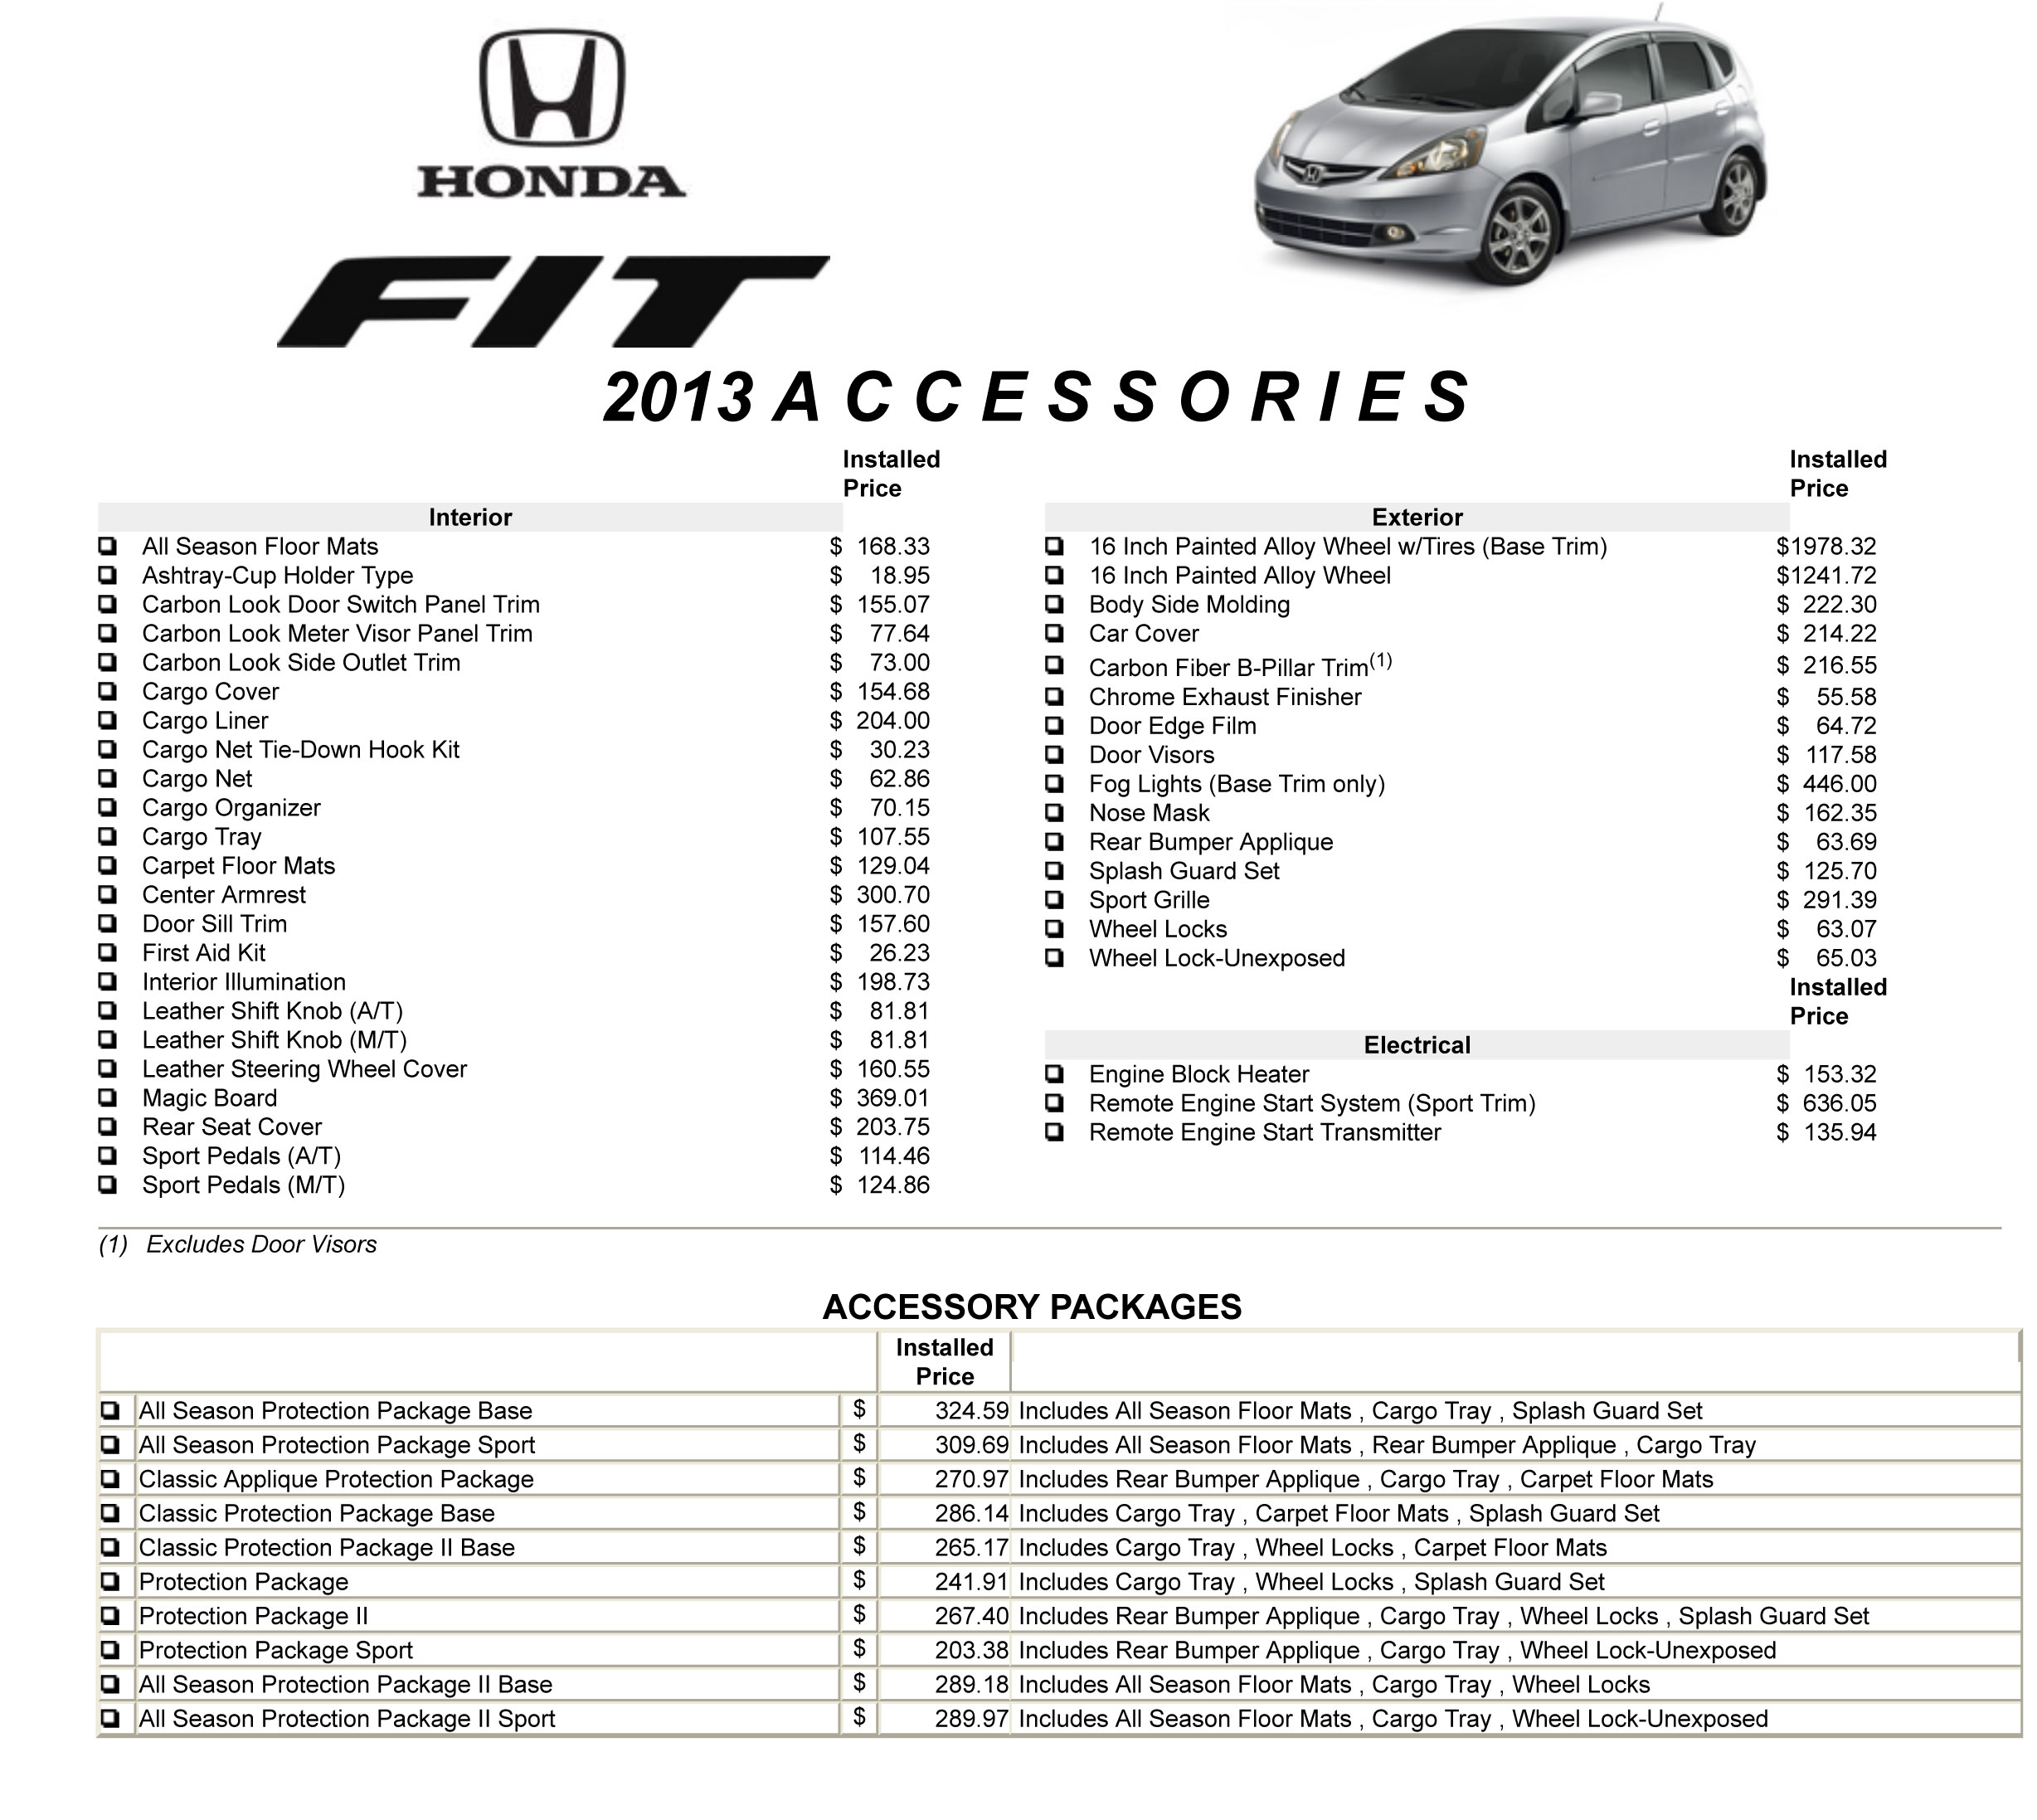 2013 Honda Fit Accessories